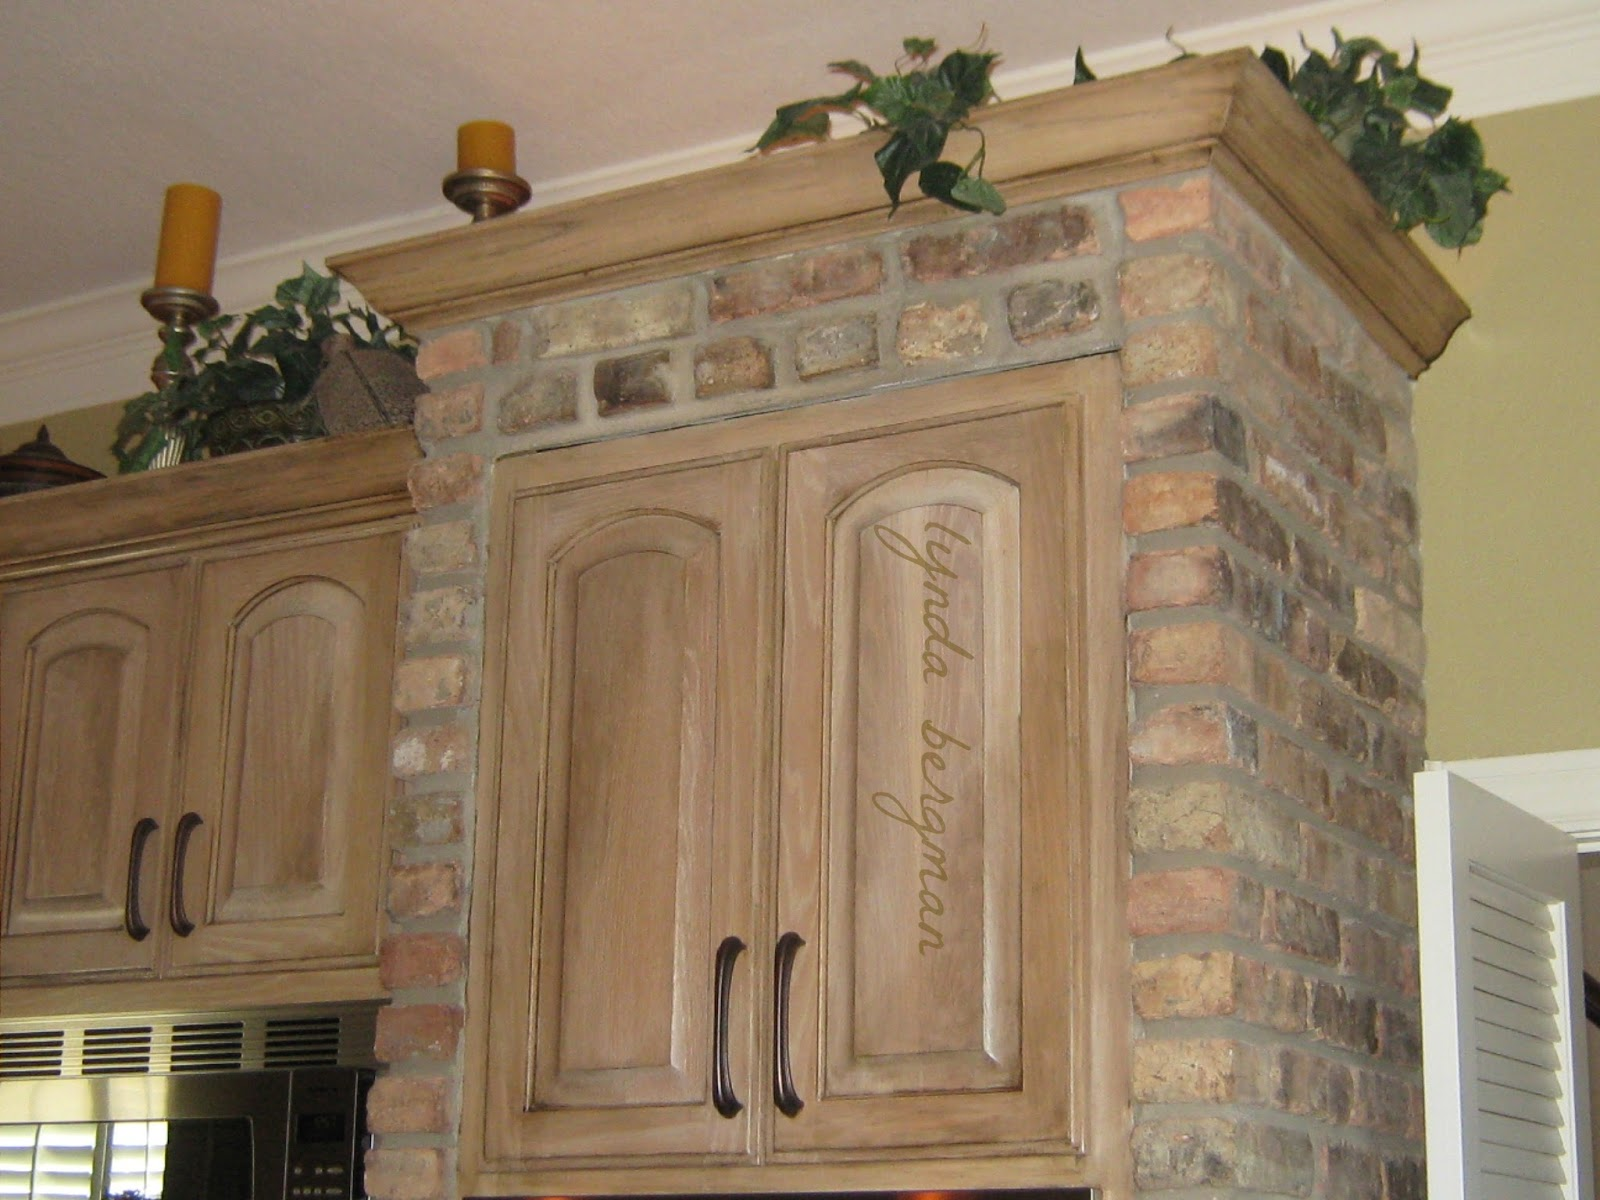 LYNDA BERGMAN DECORATIVE ARTISAN DISTRESSING AGING PICKLED - Whitewash kitchen cabinets